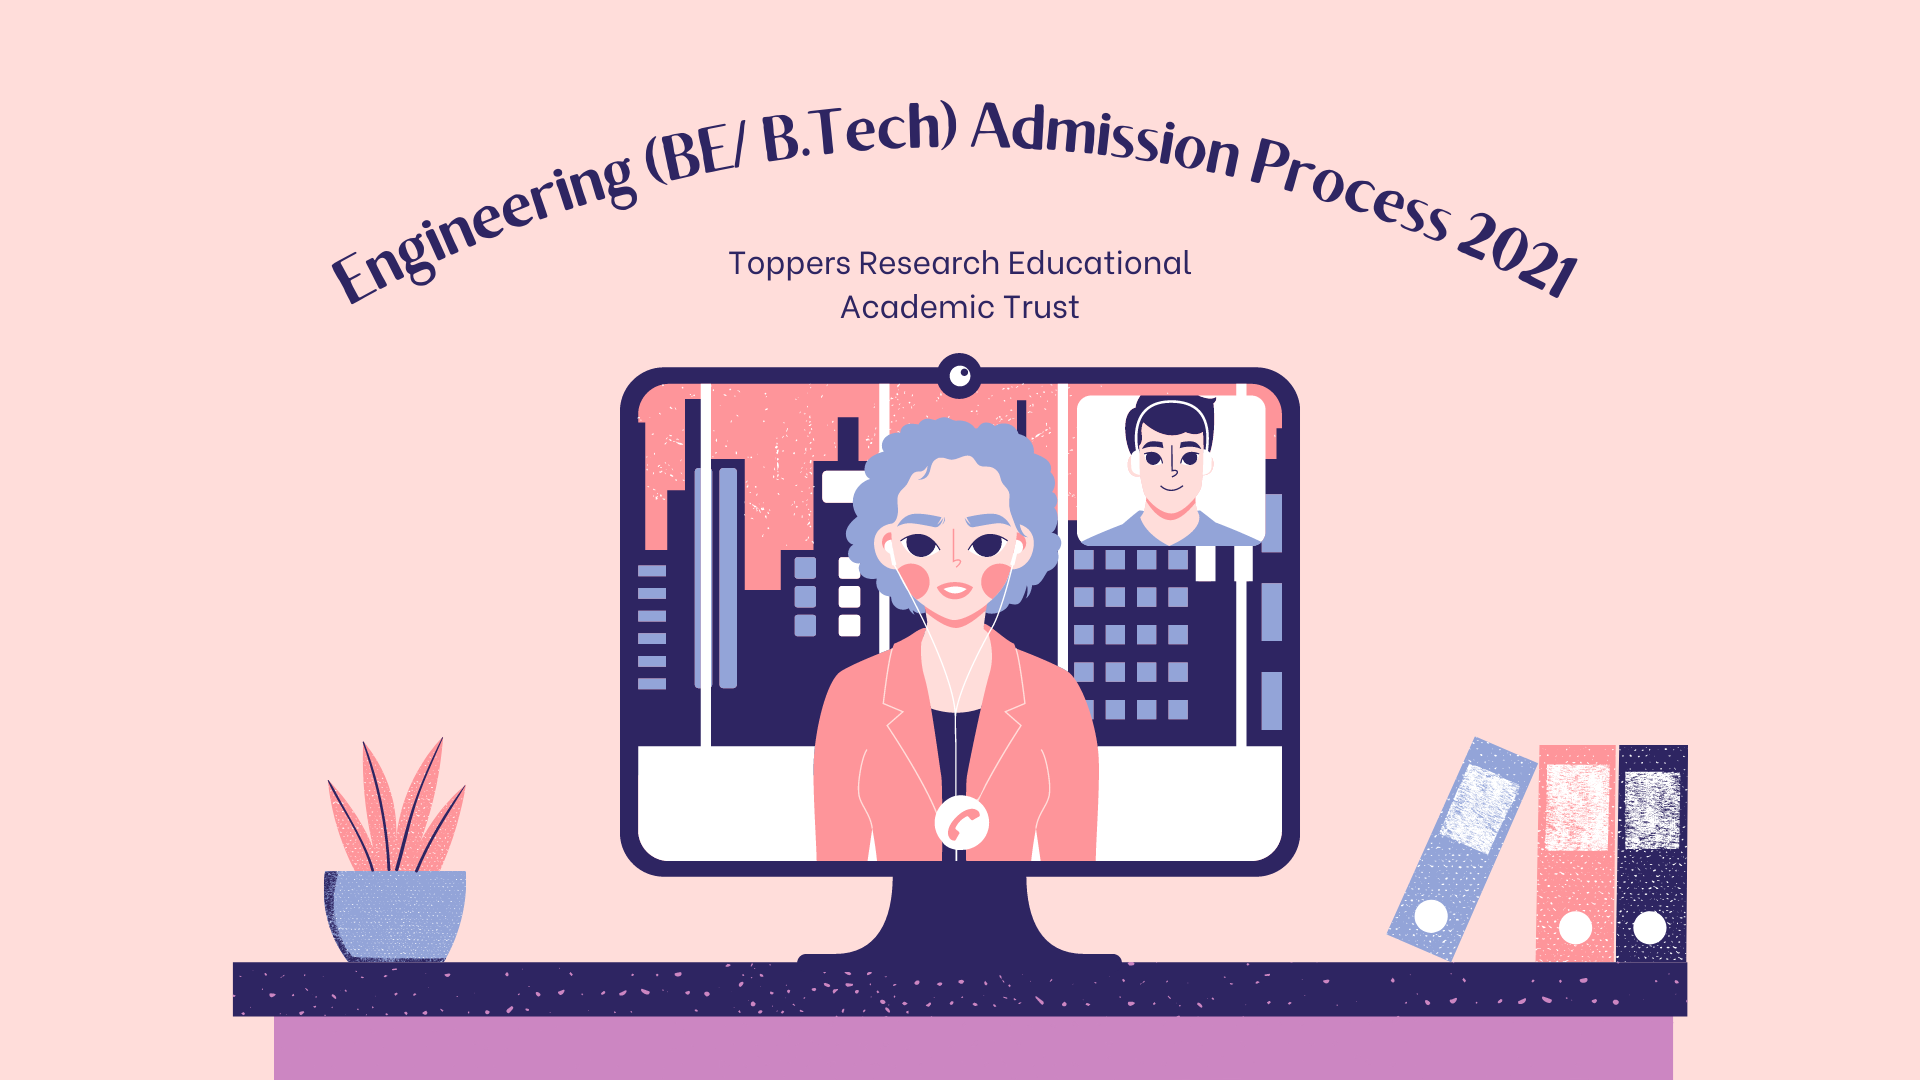 Engineering (BE/ B.Tech) Admission Process 2021 - Dates, Eligibility, Fees, Selection Process